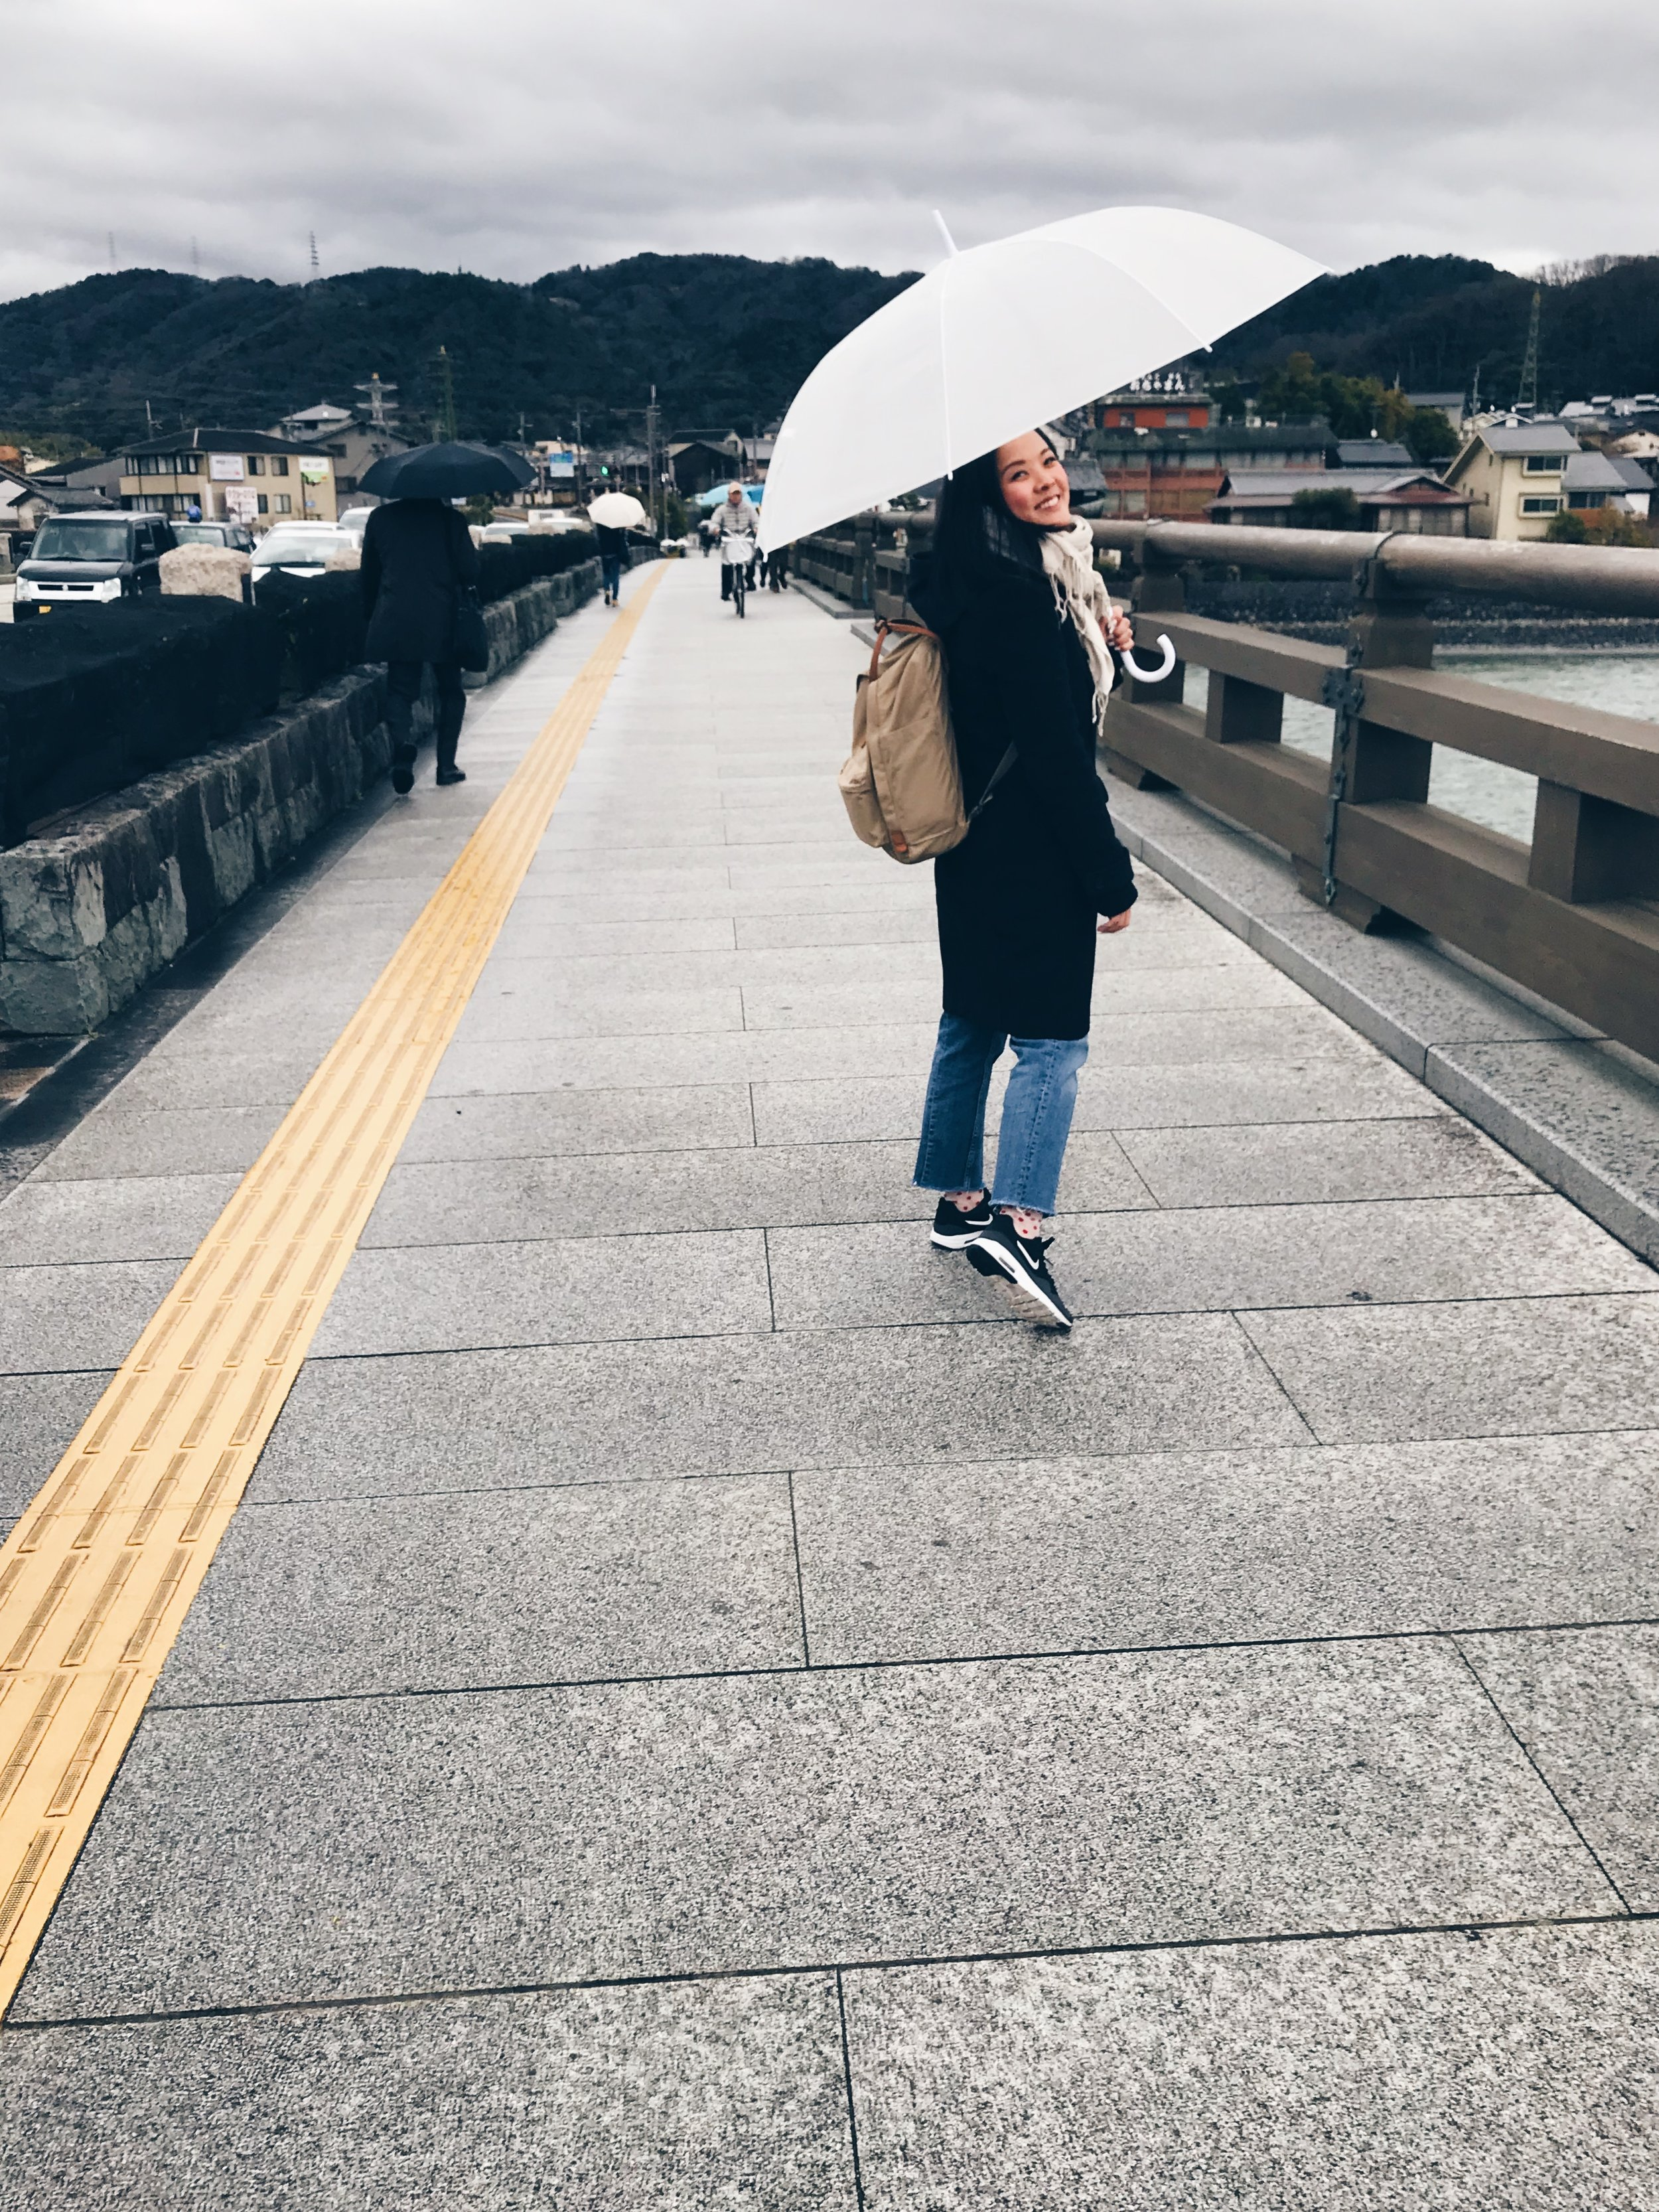 It was a rainy day in Uji